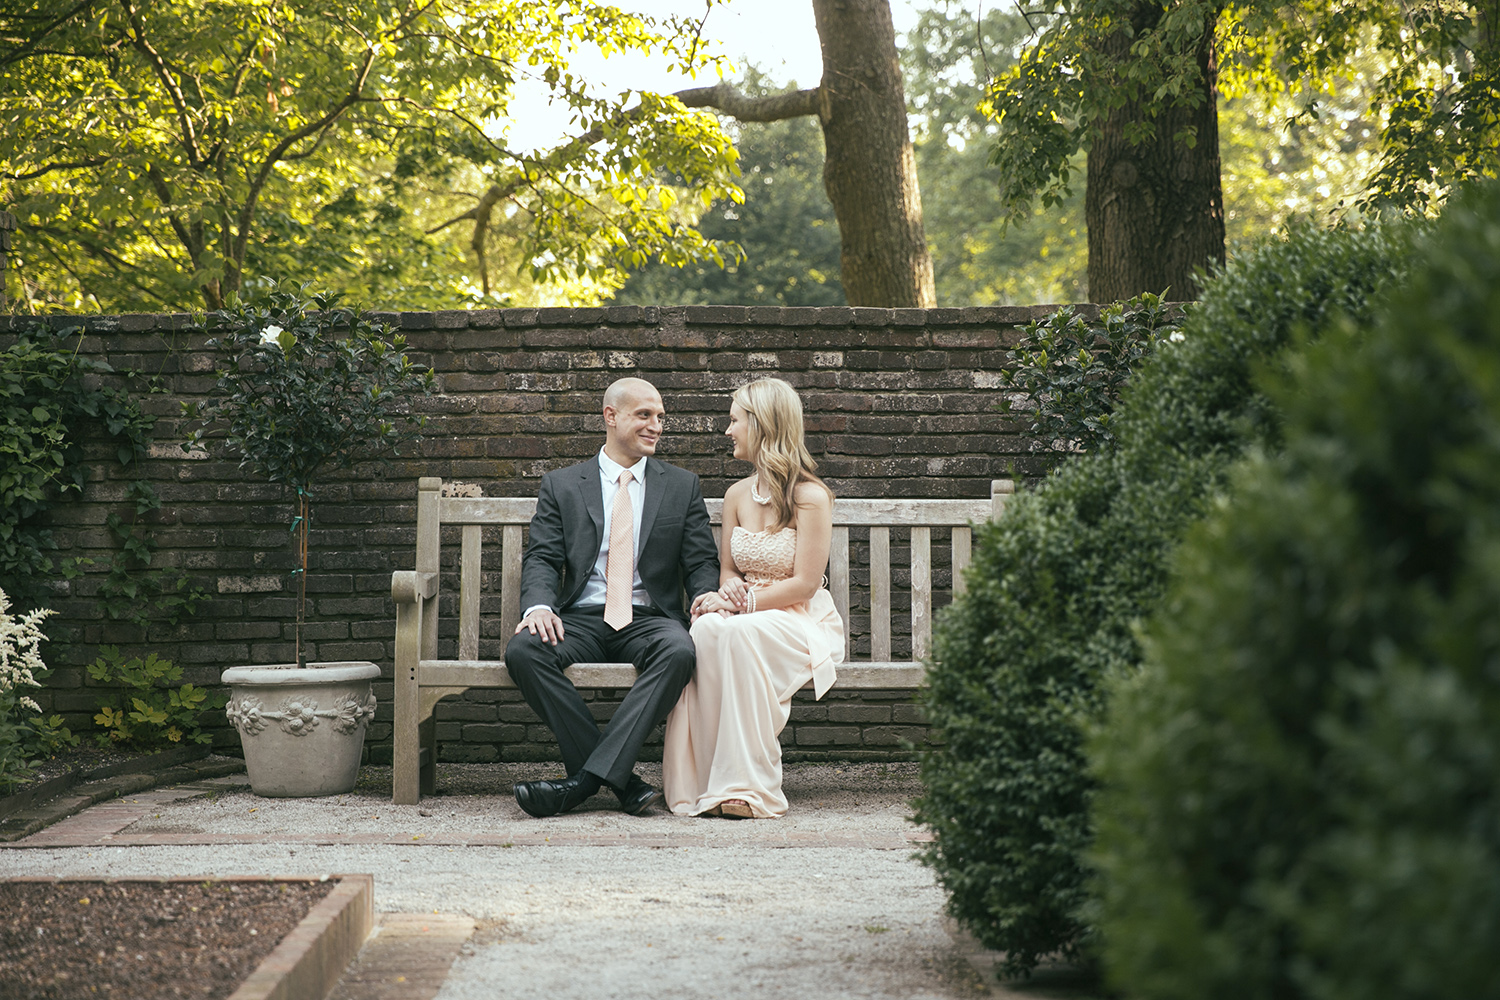 This Engagement session was done at the Henry Clay Estate near Chevy Chase in Lexington, Kentucky. The Pristine Gardens are perfect for a classic look.